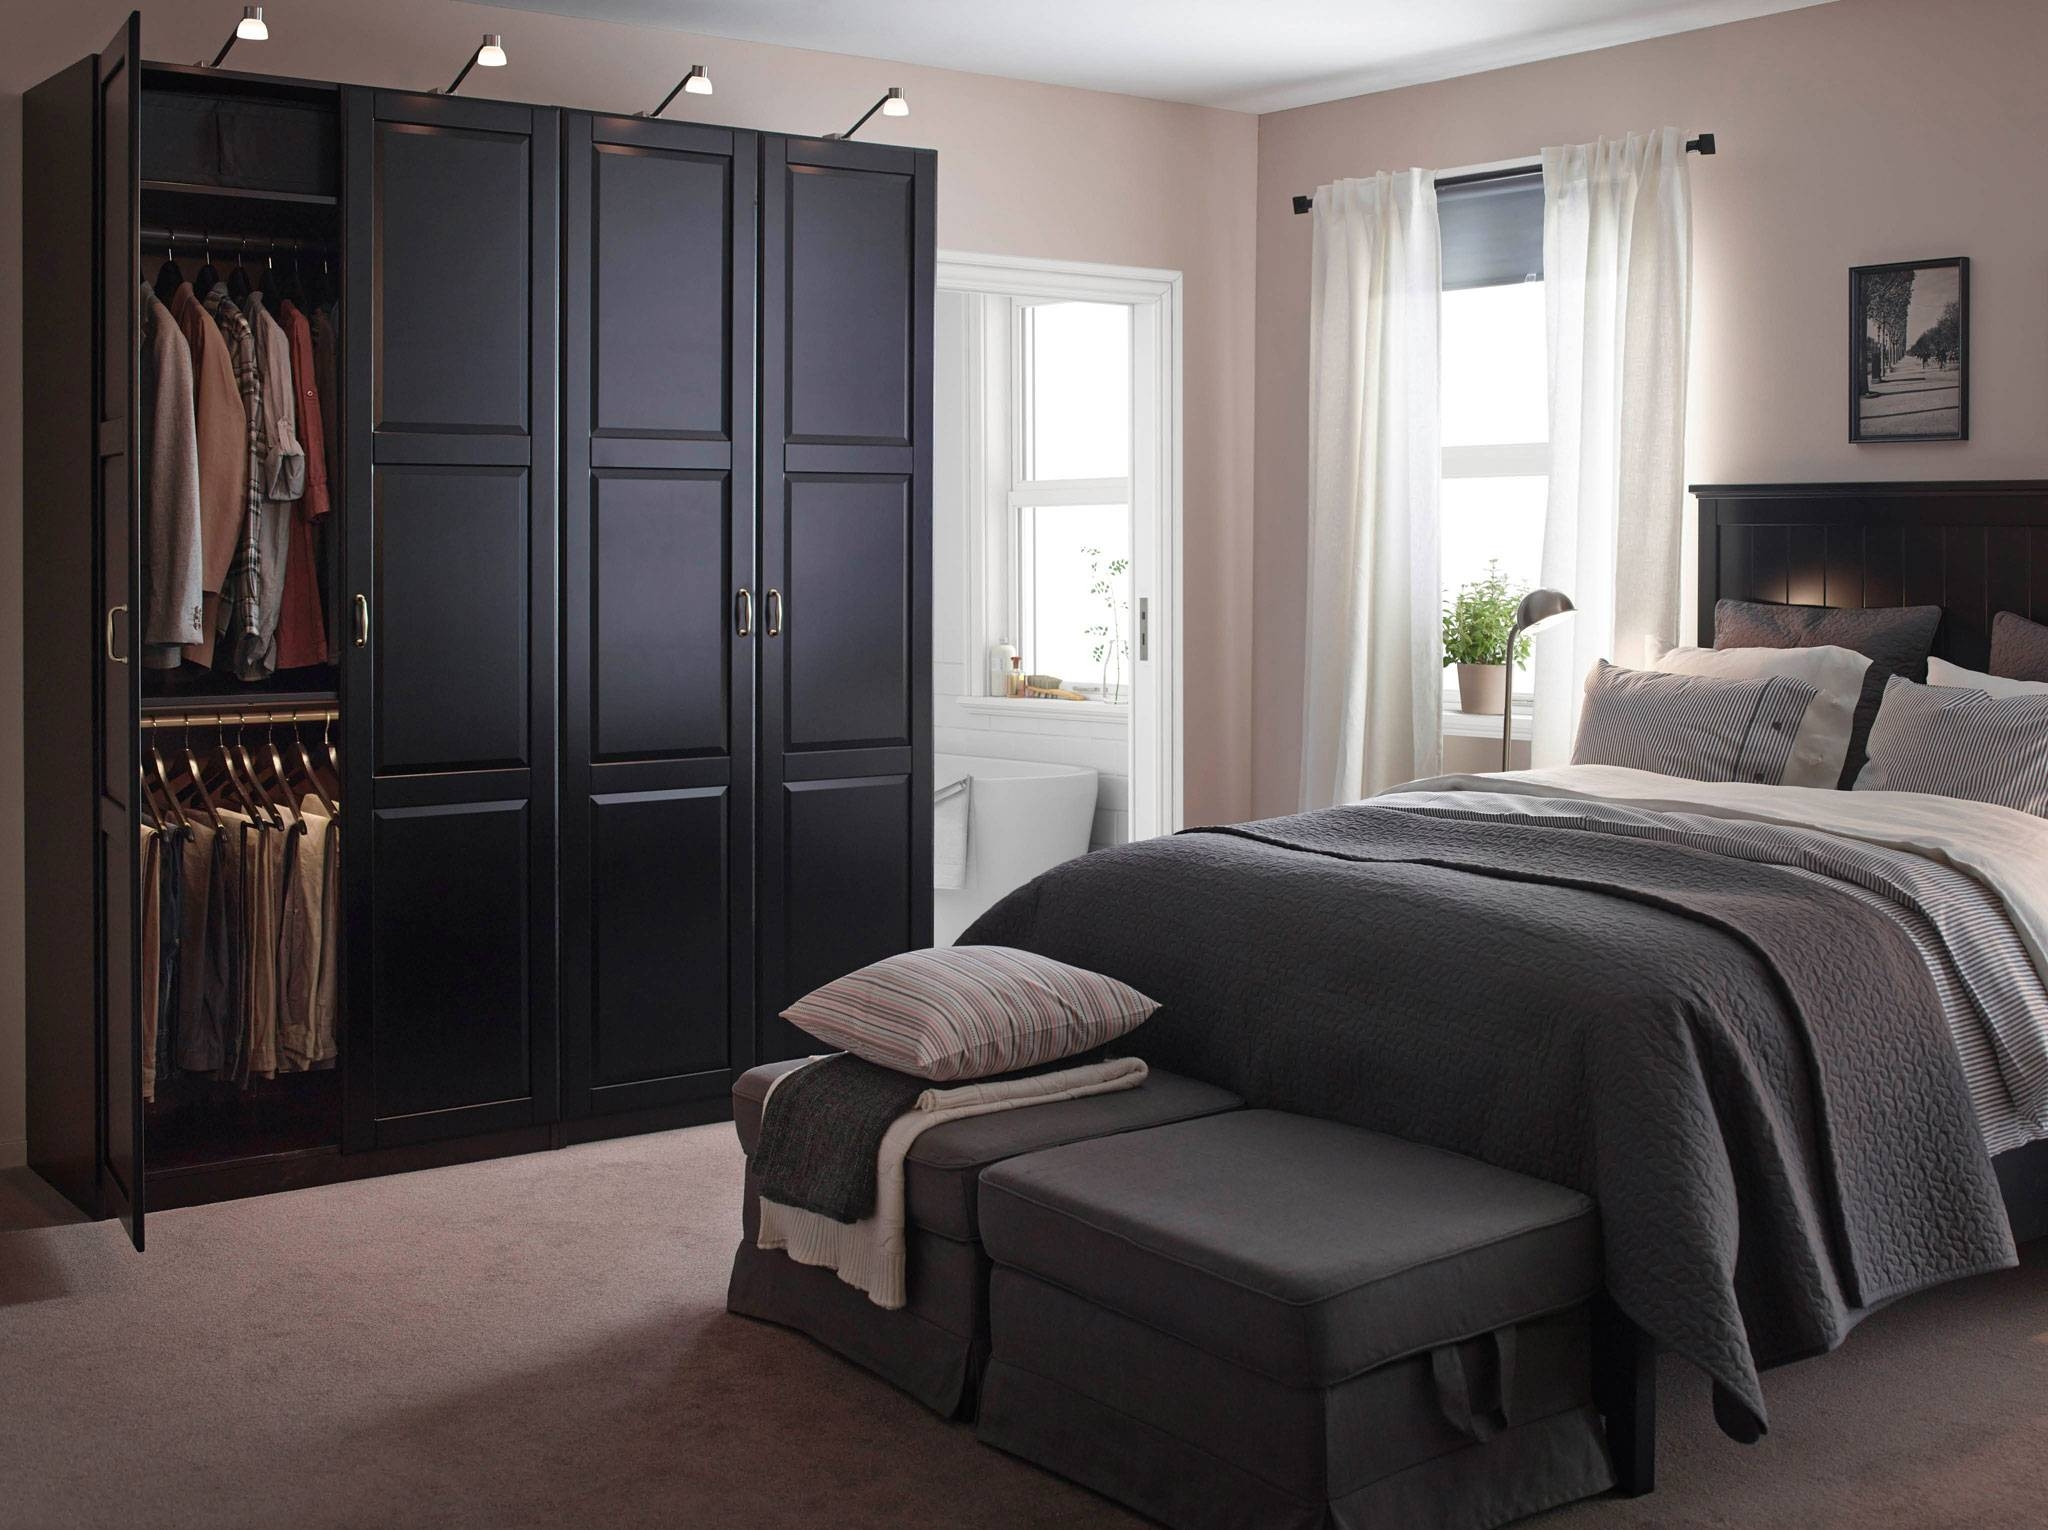 Bedroom Furniture & Ideas | Ikea pertaining to Wardrobes and Drawers Combo (Image 4 of 15)